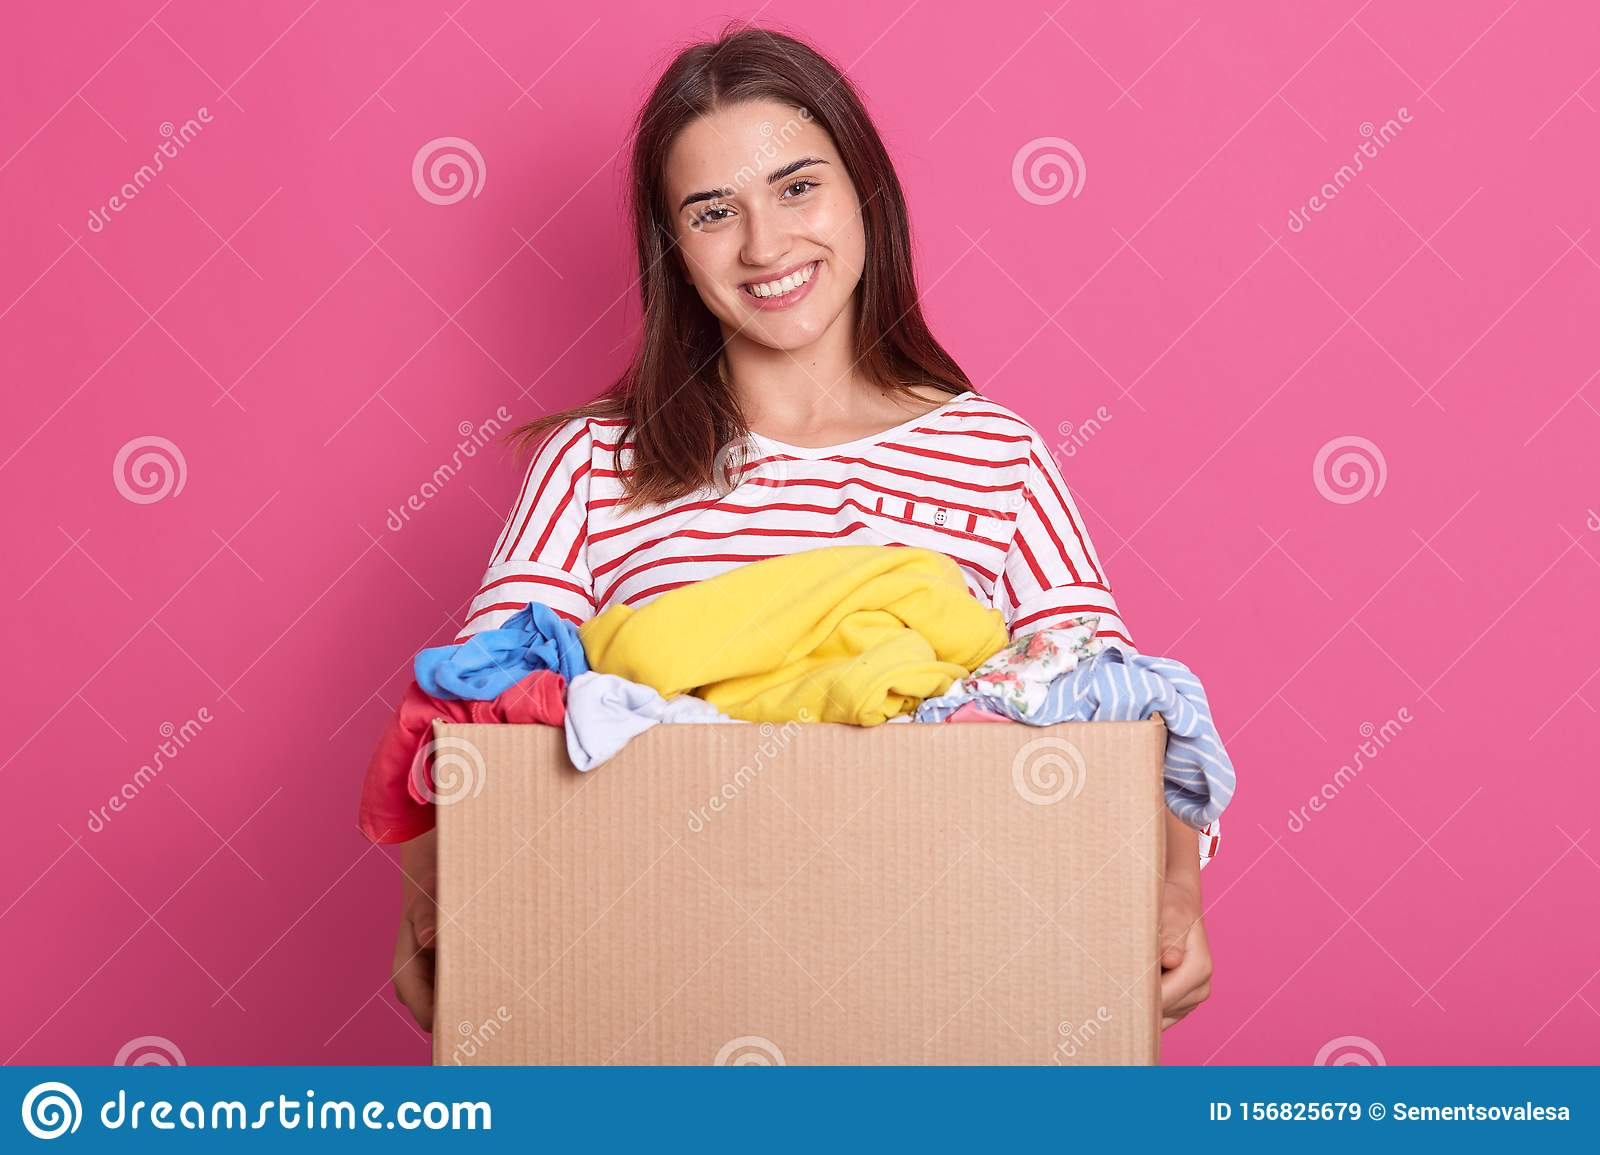 Studio shot of adorable female stands smiling with box full of reusable clothing for poor people isolated over pink background,